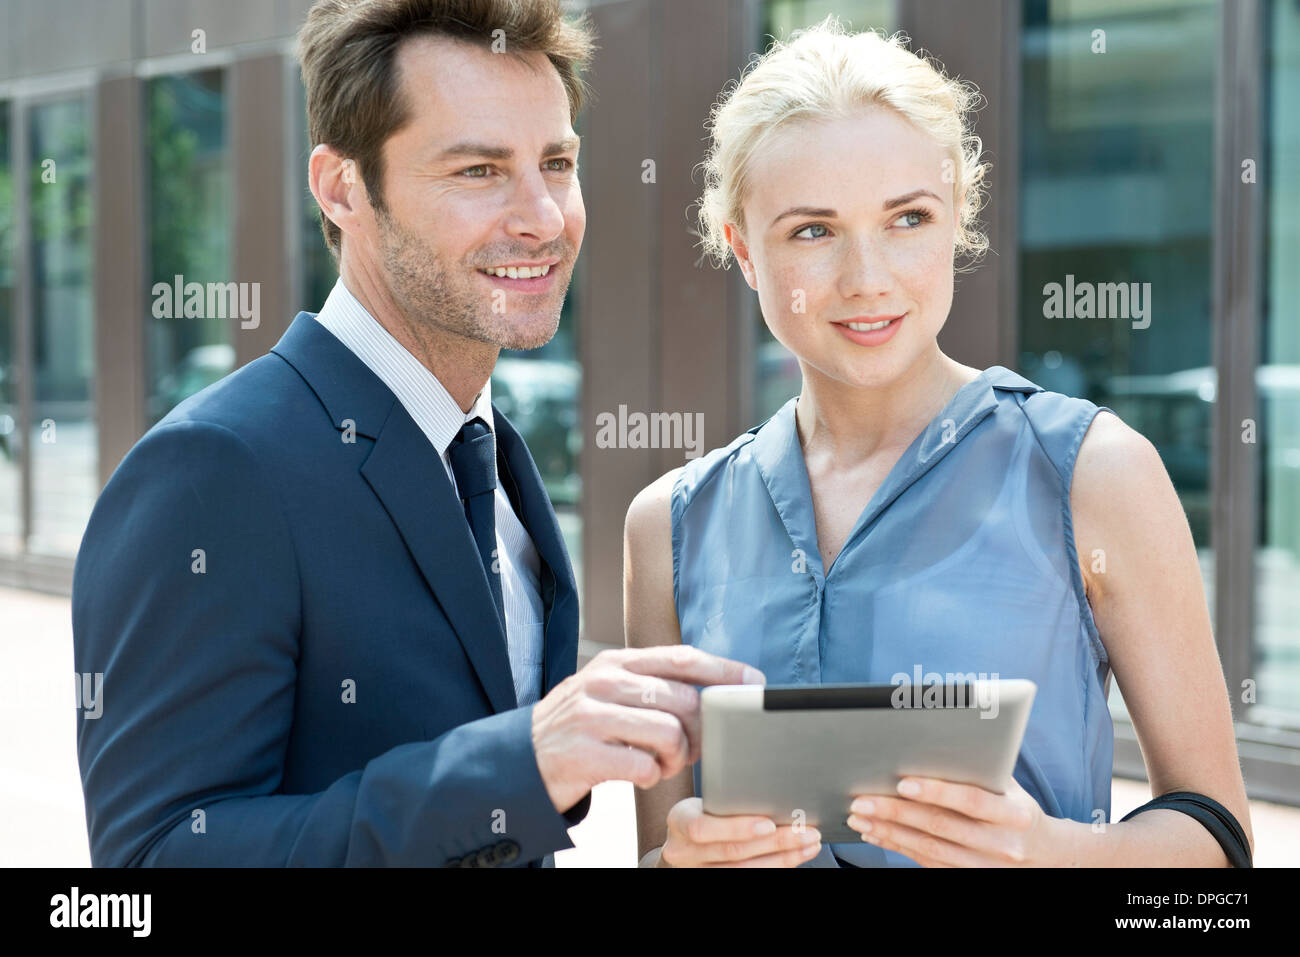 Real estate agent with digital tablet showing property to potential buyer - Stock Image